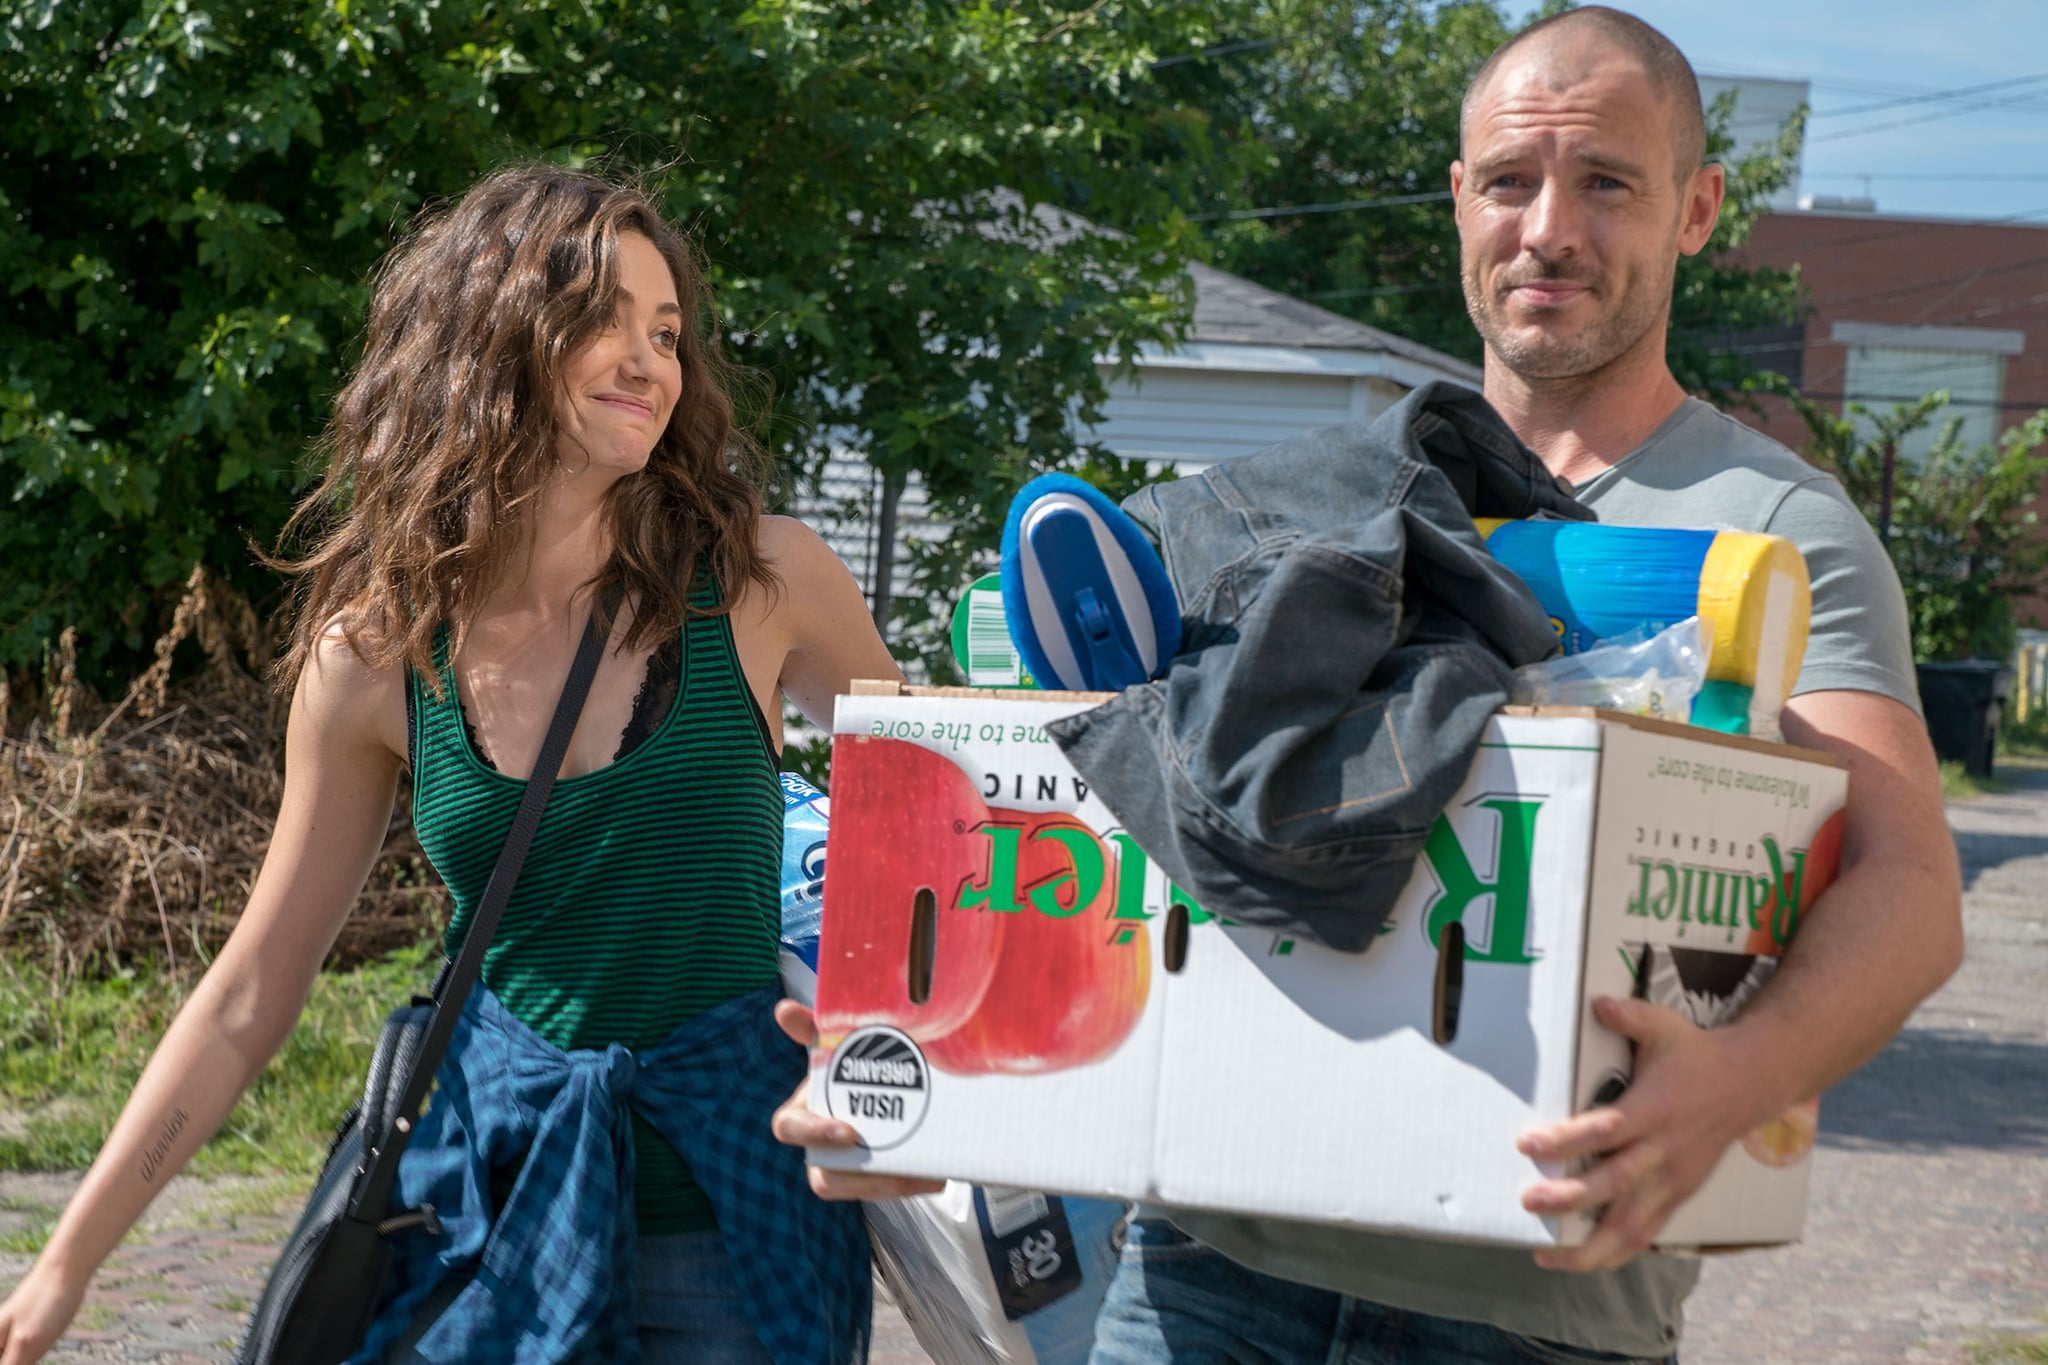 SHAMELESS, Emmy Rossum, Richard Flood in 'Are You There Shim? It's Me, Ian', (Season 9, episode 901, aired September 9, 2018), ph: Chuck Hodes / Showtime / courtesy Everett Collection